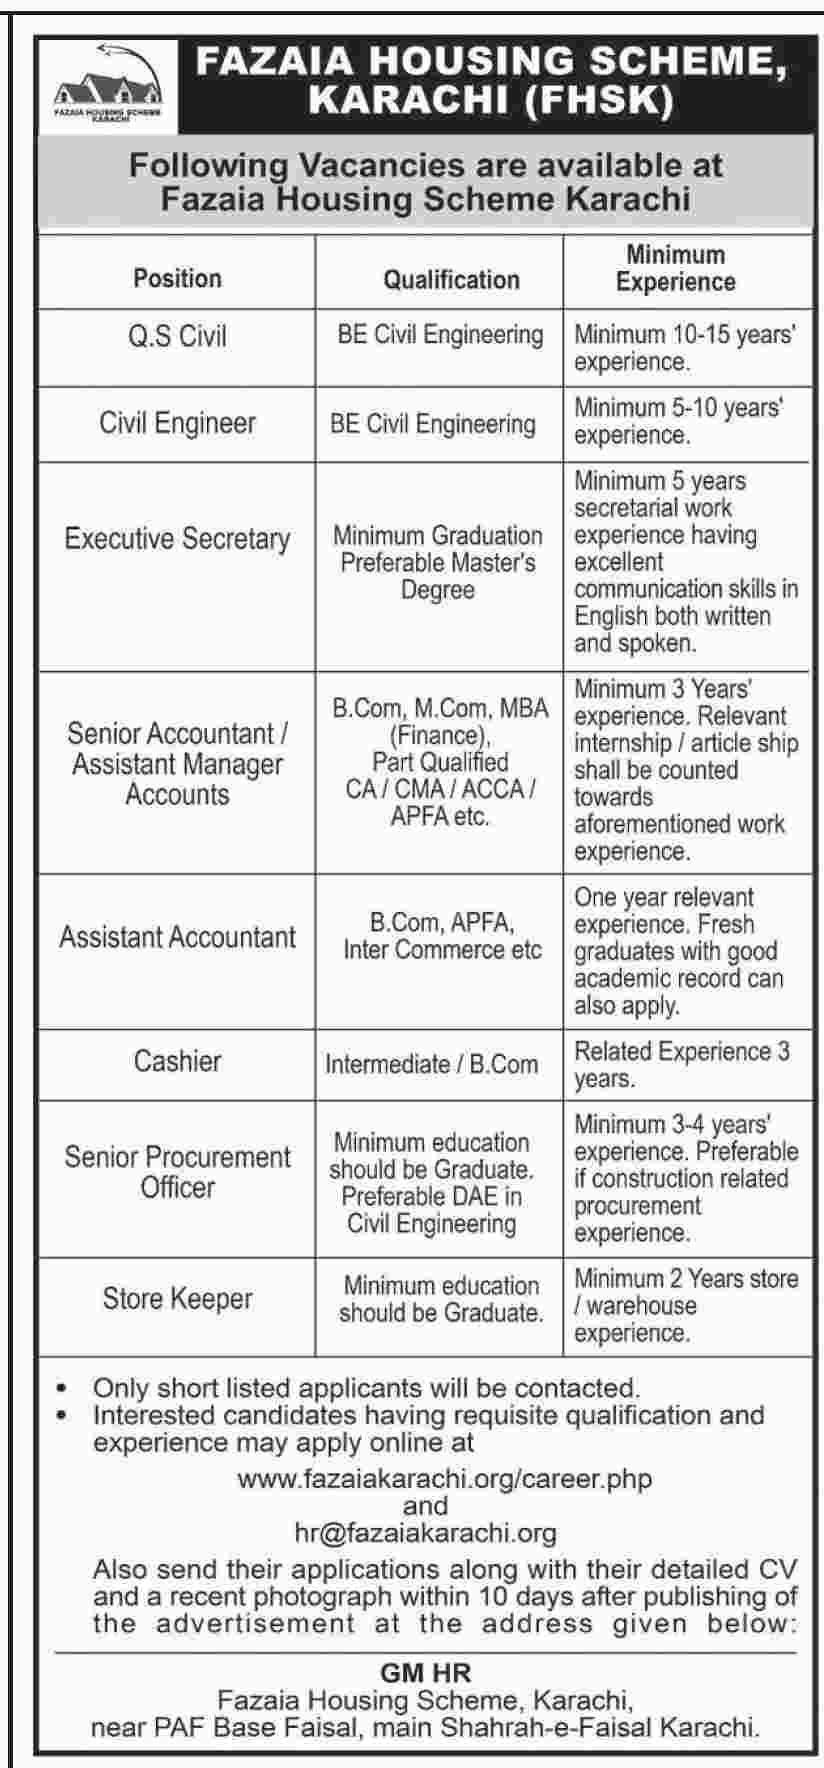 Fazaia Housing Scheme Karachi Fhsk Jobs  VacanciesPositions